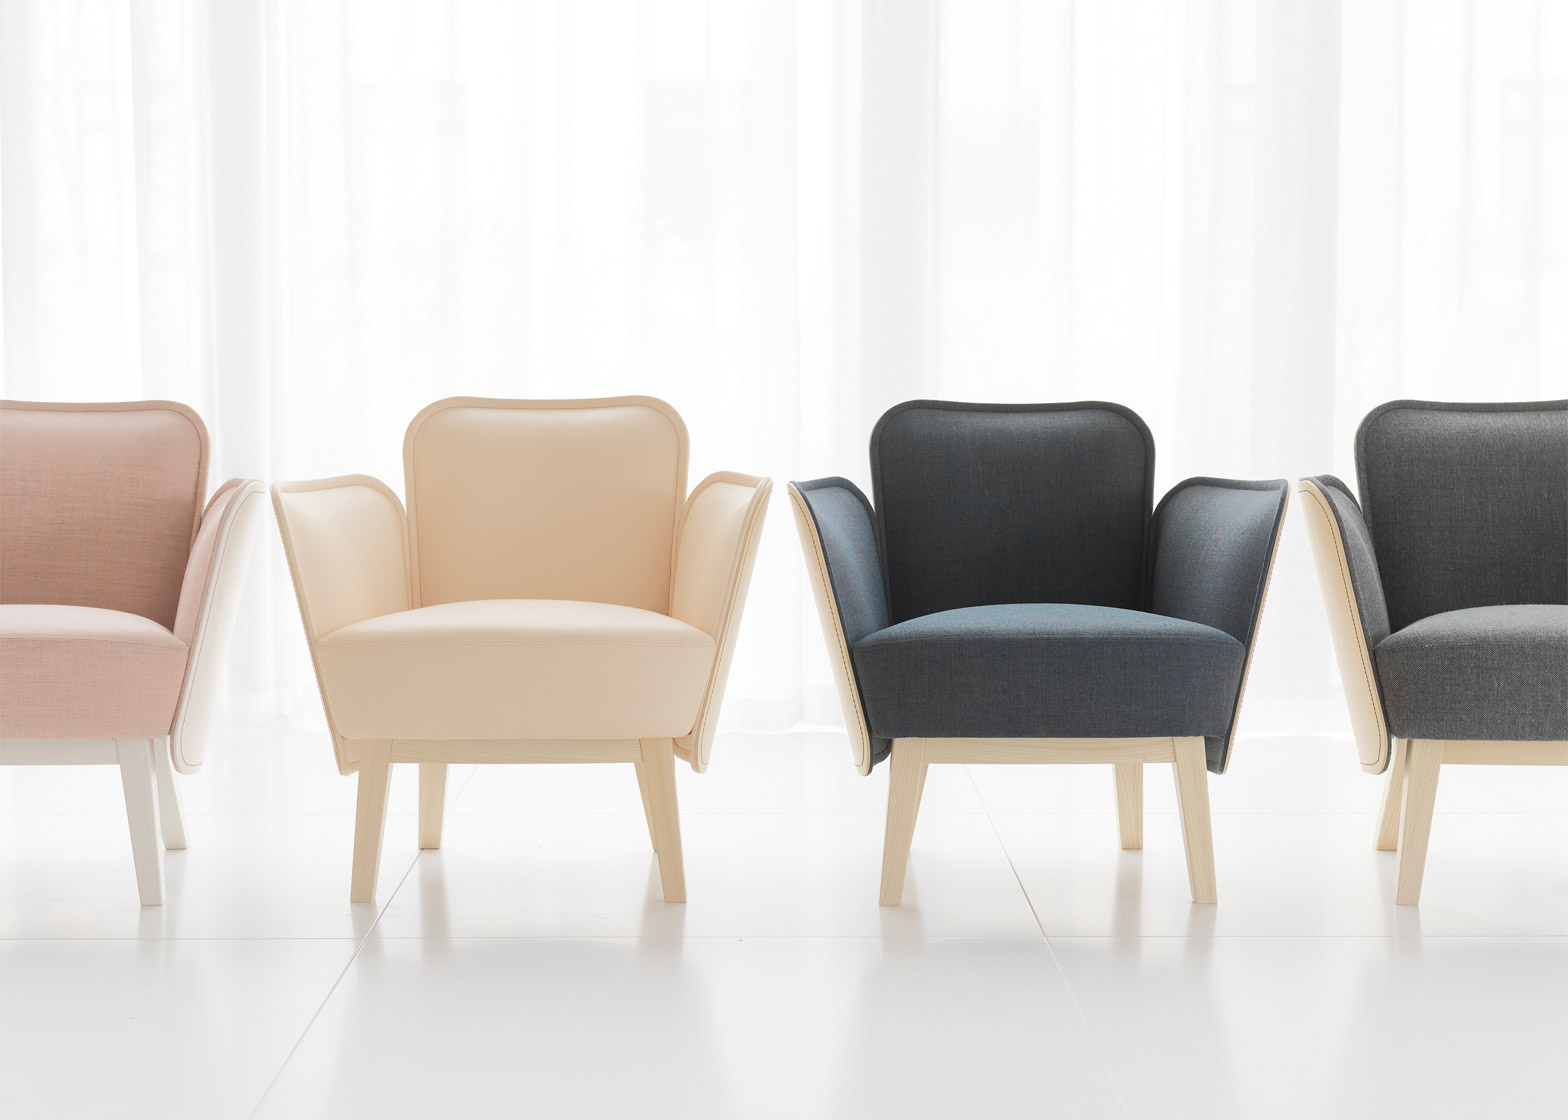 Sofa and armchair by Farg & Blanche for Gärsnäs